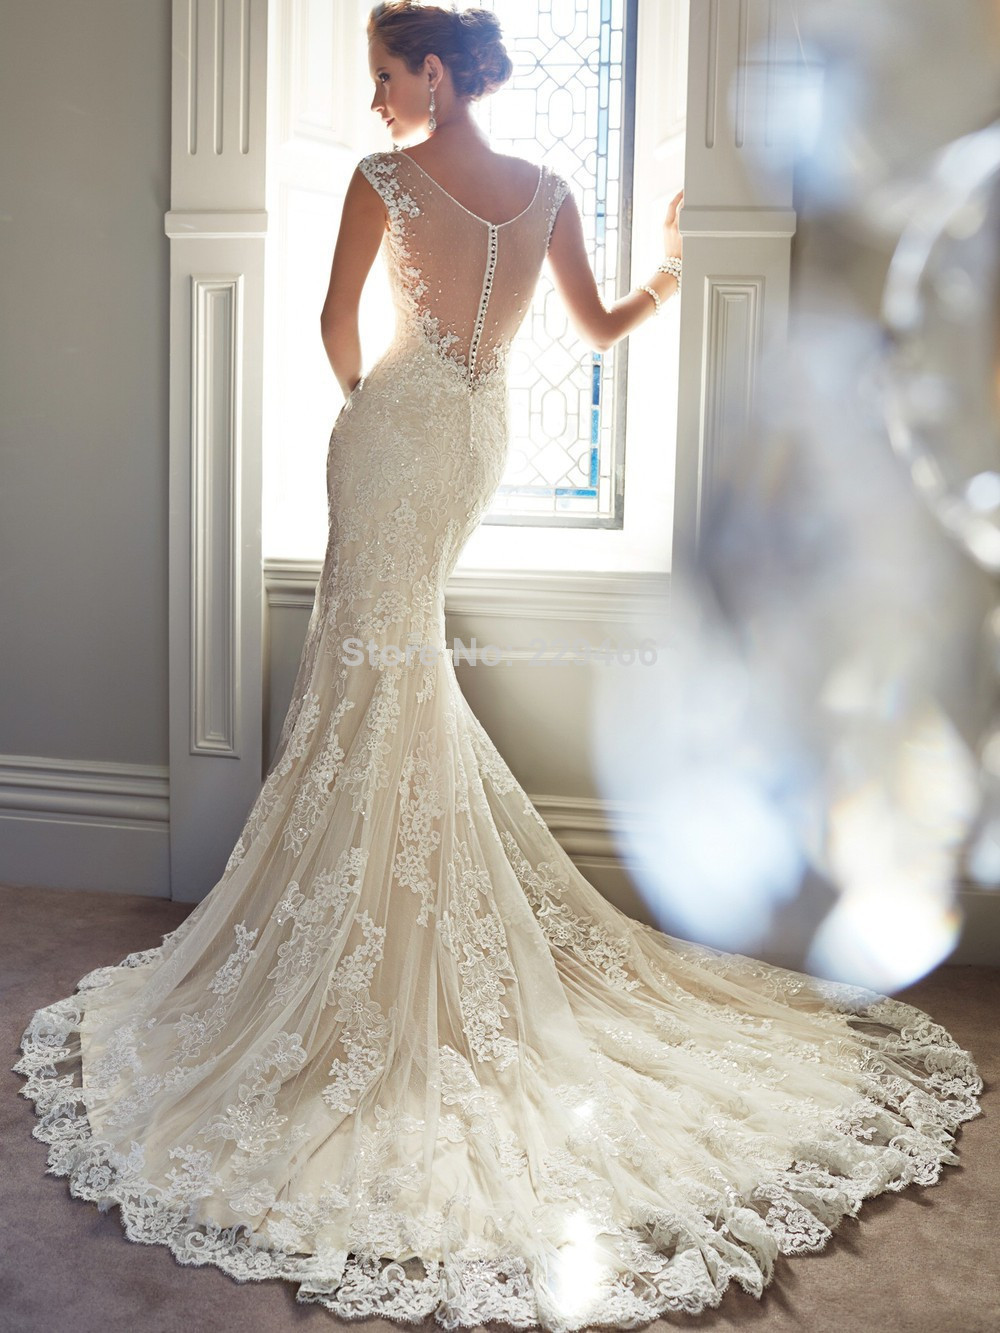 Funky Backless Lace Wedding Gown Ornament - Wedding Plan Ideas ...